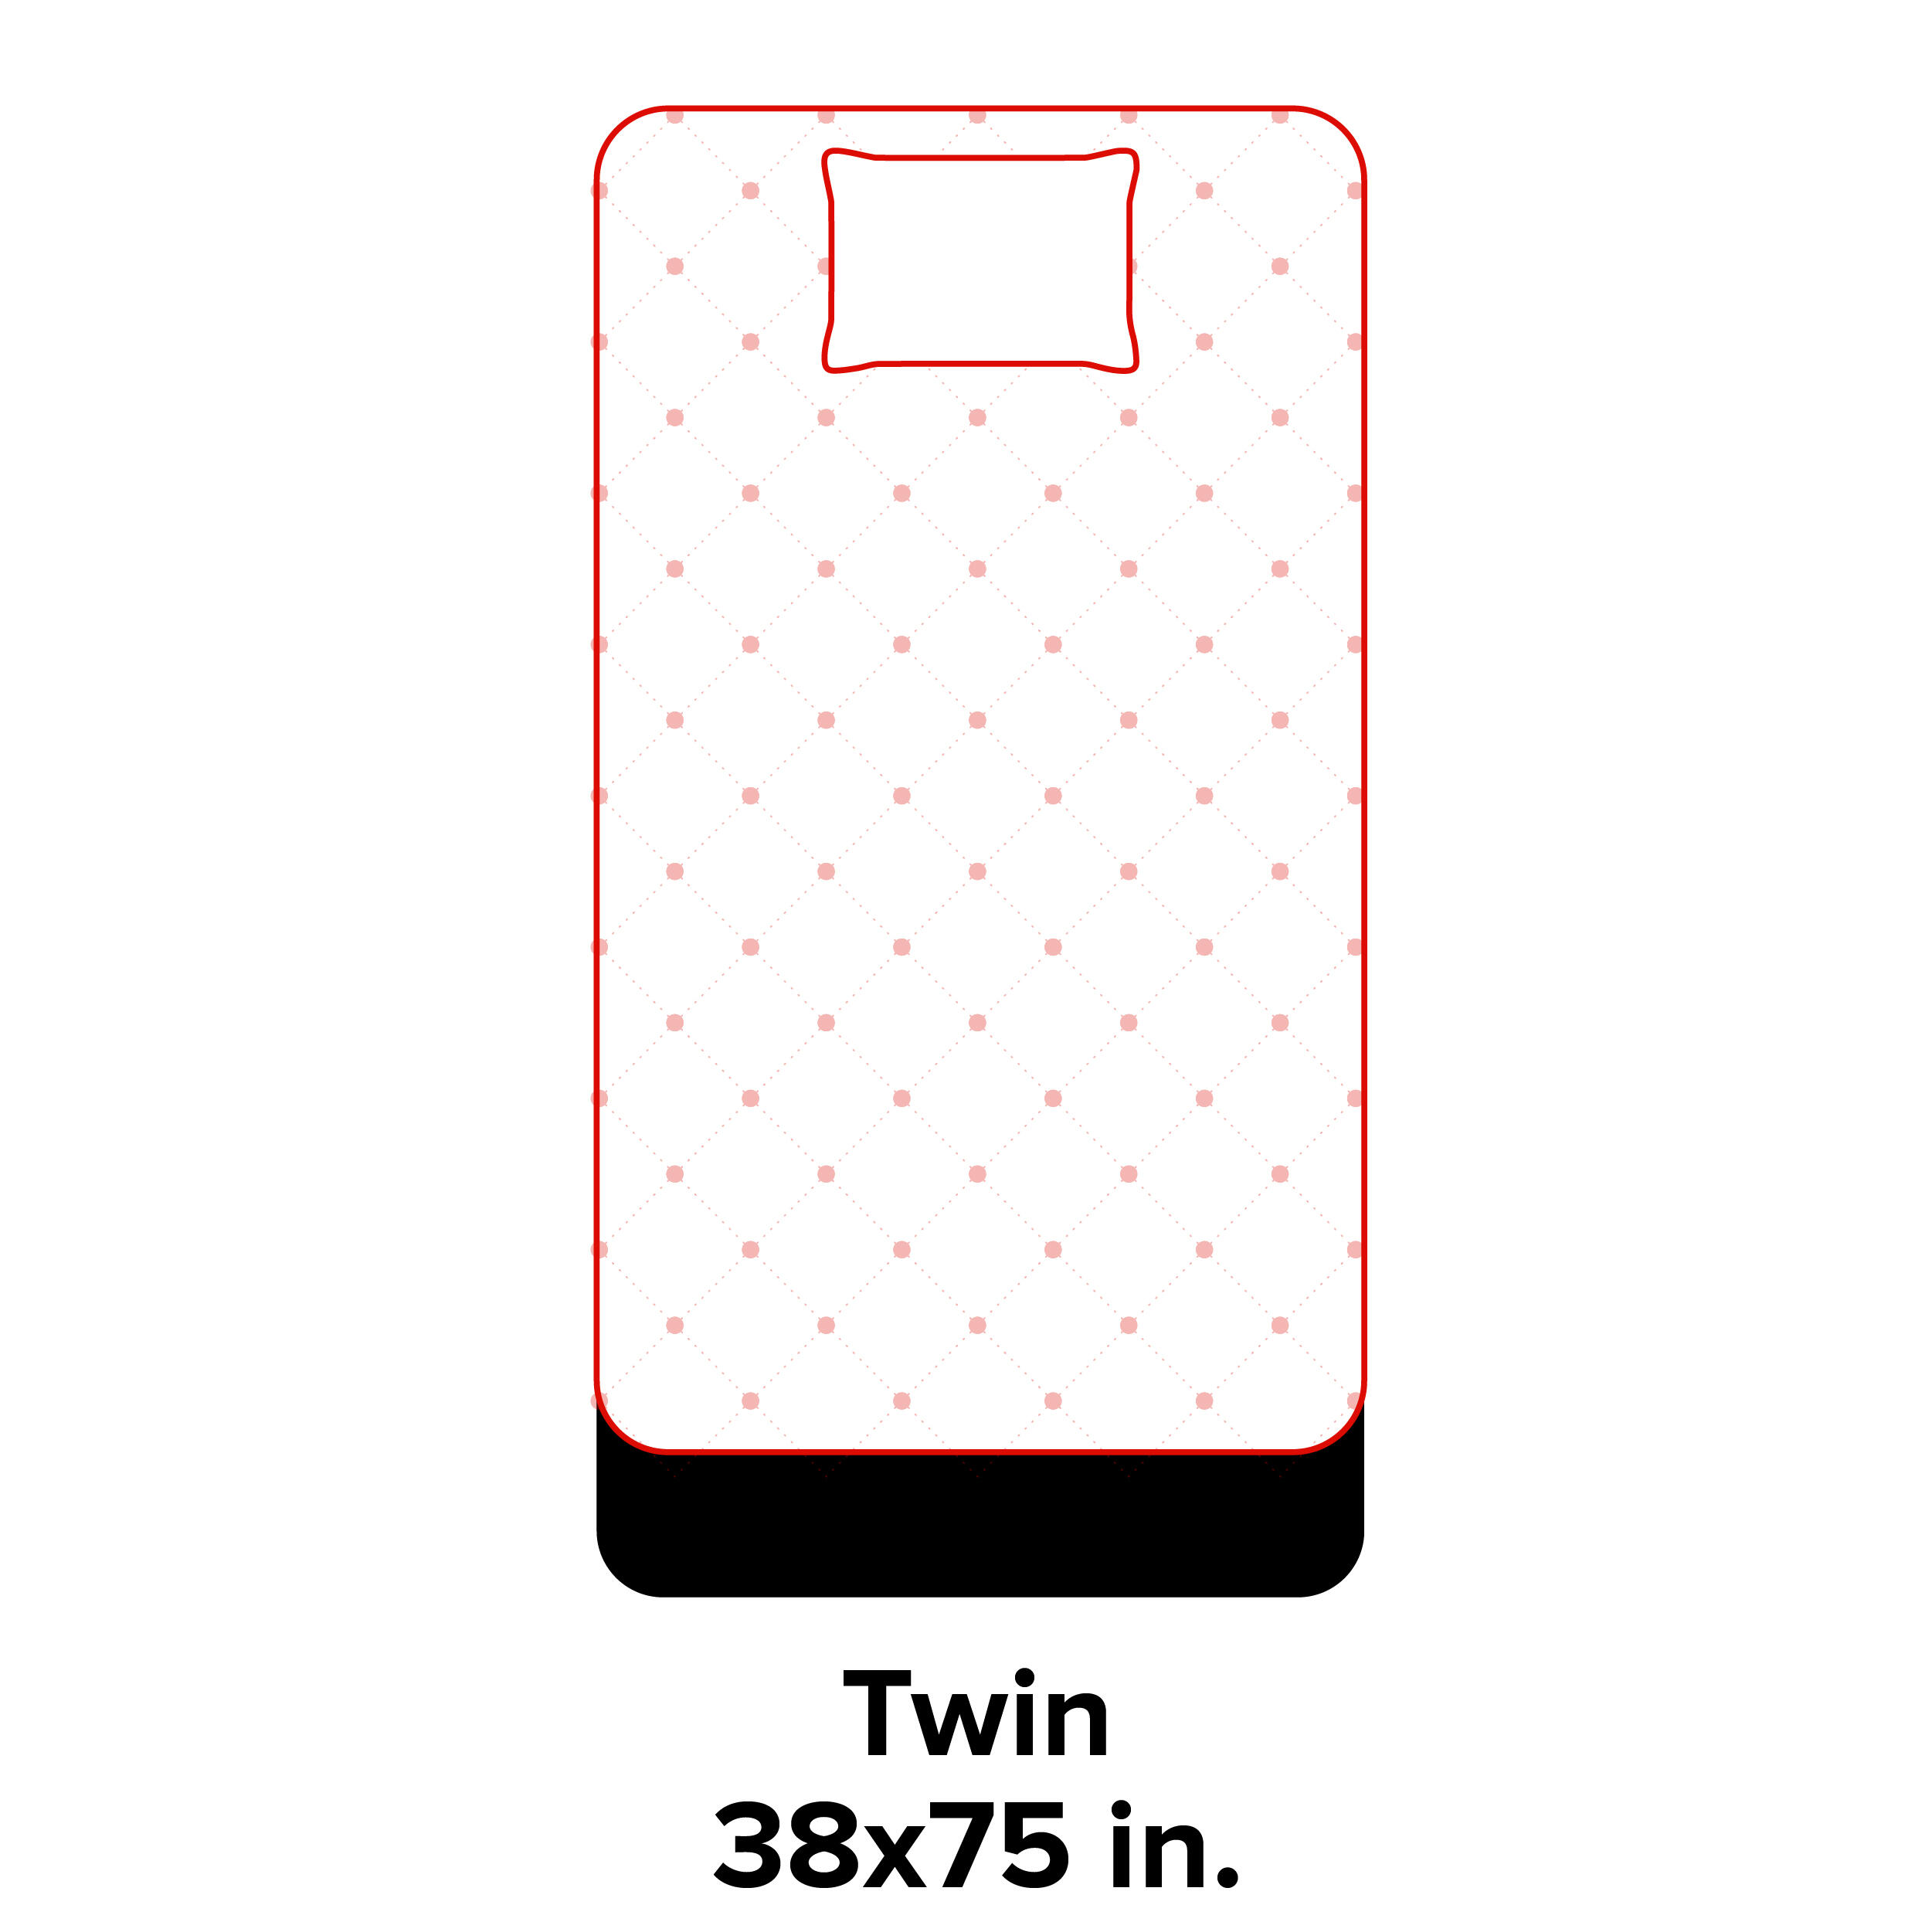 mattress-size-guide-graphic-cnet-twin